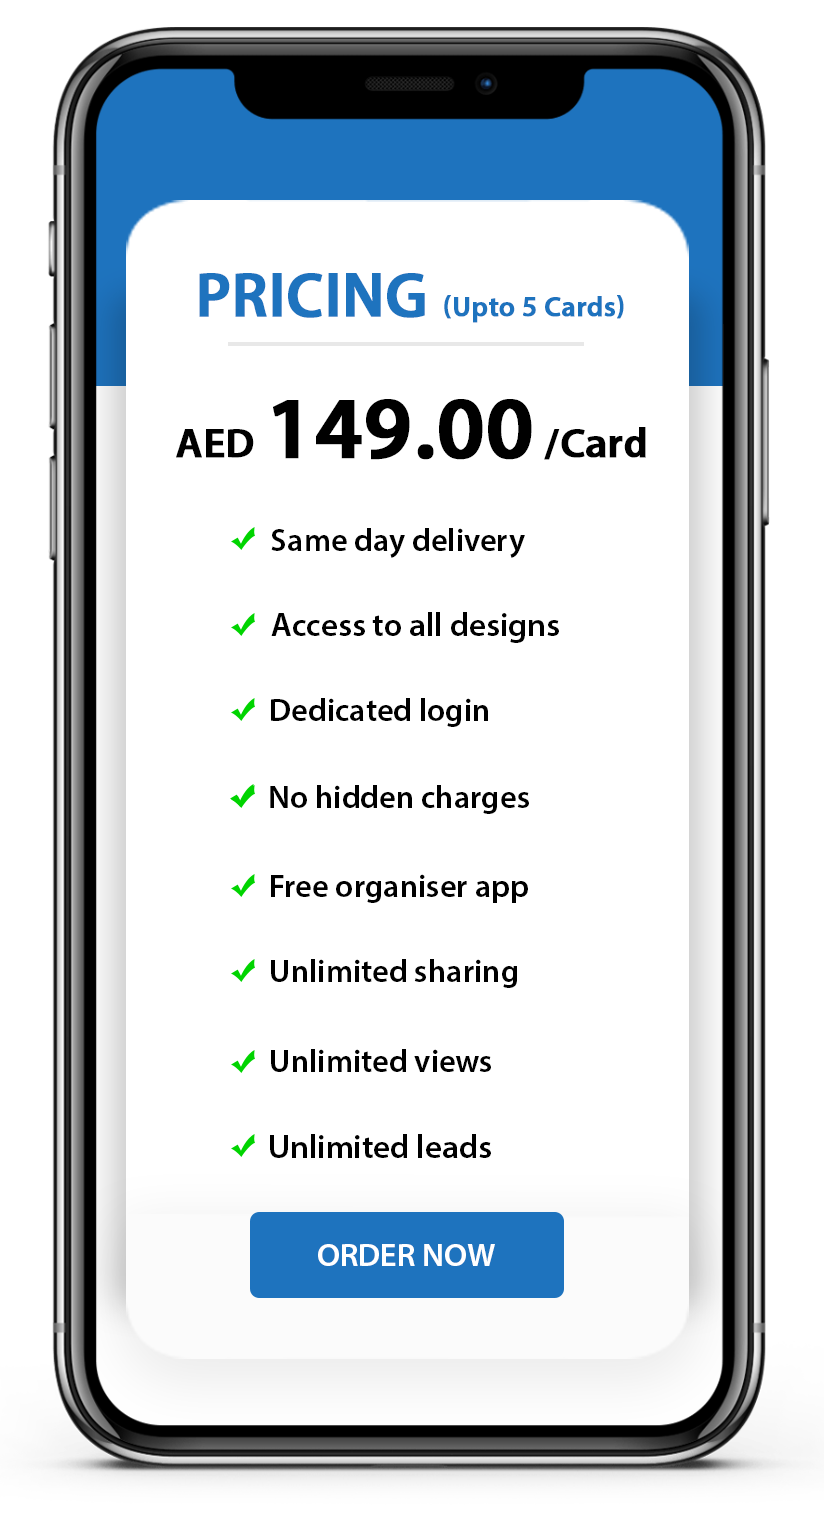 //www.atees.ae/digital-cards/wp-content/uploads/2020/08/price-mobnew.png